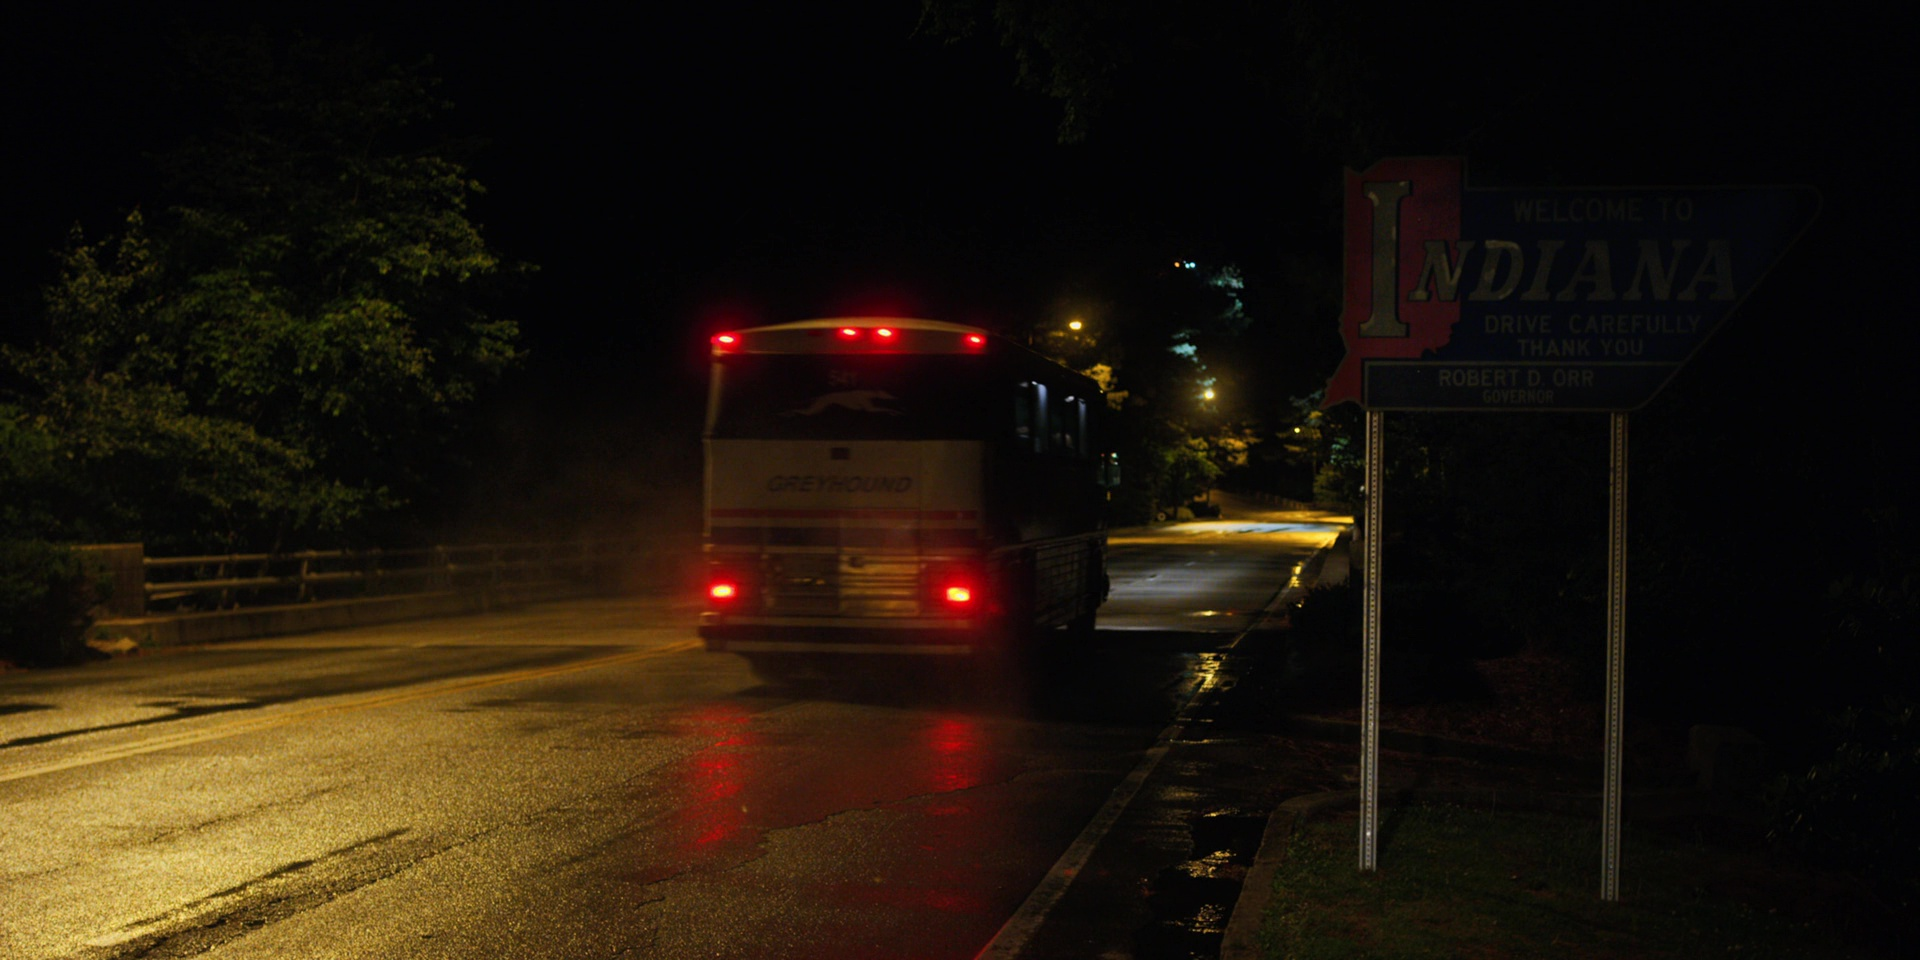 Greyhound Lines Bus Used by Millie Bobby Brown in Stranger Things The Lost Sister 2017 TV Show